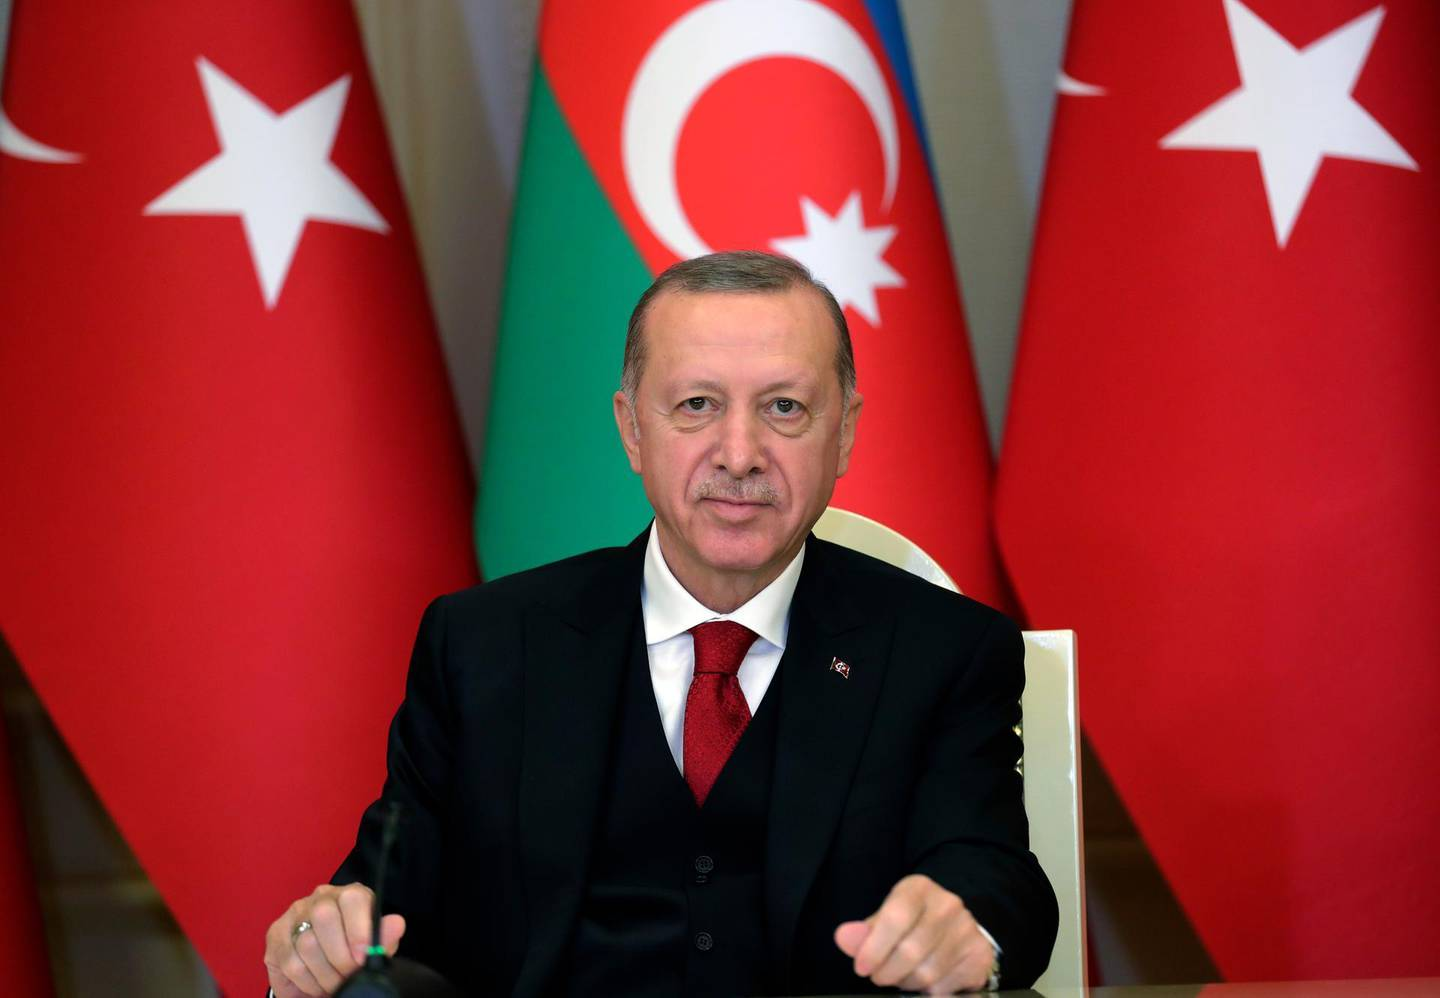 """Turkey's President Recep Tayyip Erdogan talks during a joint news conference with Azerbaijan's President Ilham Aliyev, in Baku, Azerbaijan, Thursday, Dec. 10, 2020. Following the approval of European leaders Friday Dec. 11, 2020 of expanding sanctions against Ankara, Turkey called on the European Union to act as an 'honest mediator' in its dispute with EU members Greece and Cyprus over the exploration of gas reserves in the Mediterranean. The leaders said early Friday that Turkey has """"engaged in unilateral actions and provocations and escalated its rhetoric against the EU.""""""""(Turkish Presidency via AP, Pool)"""